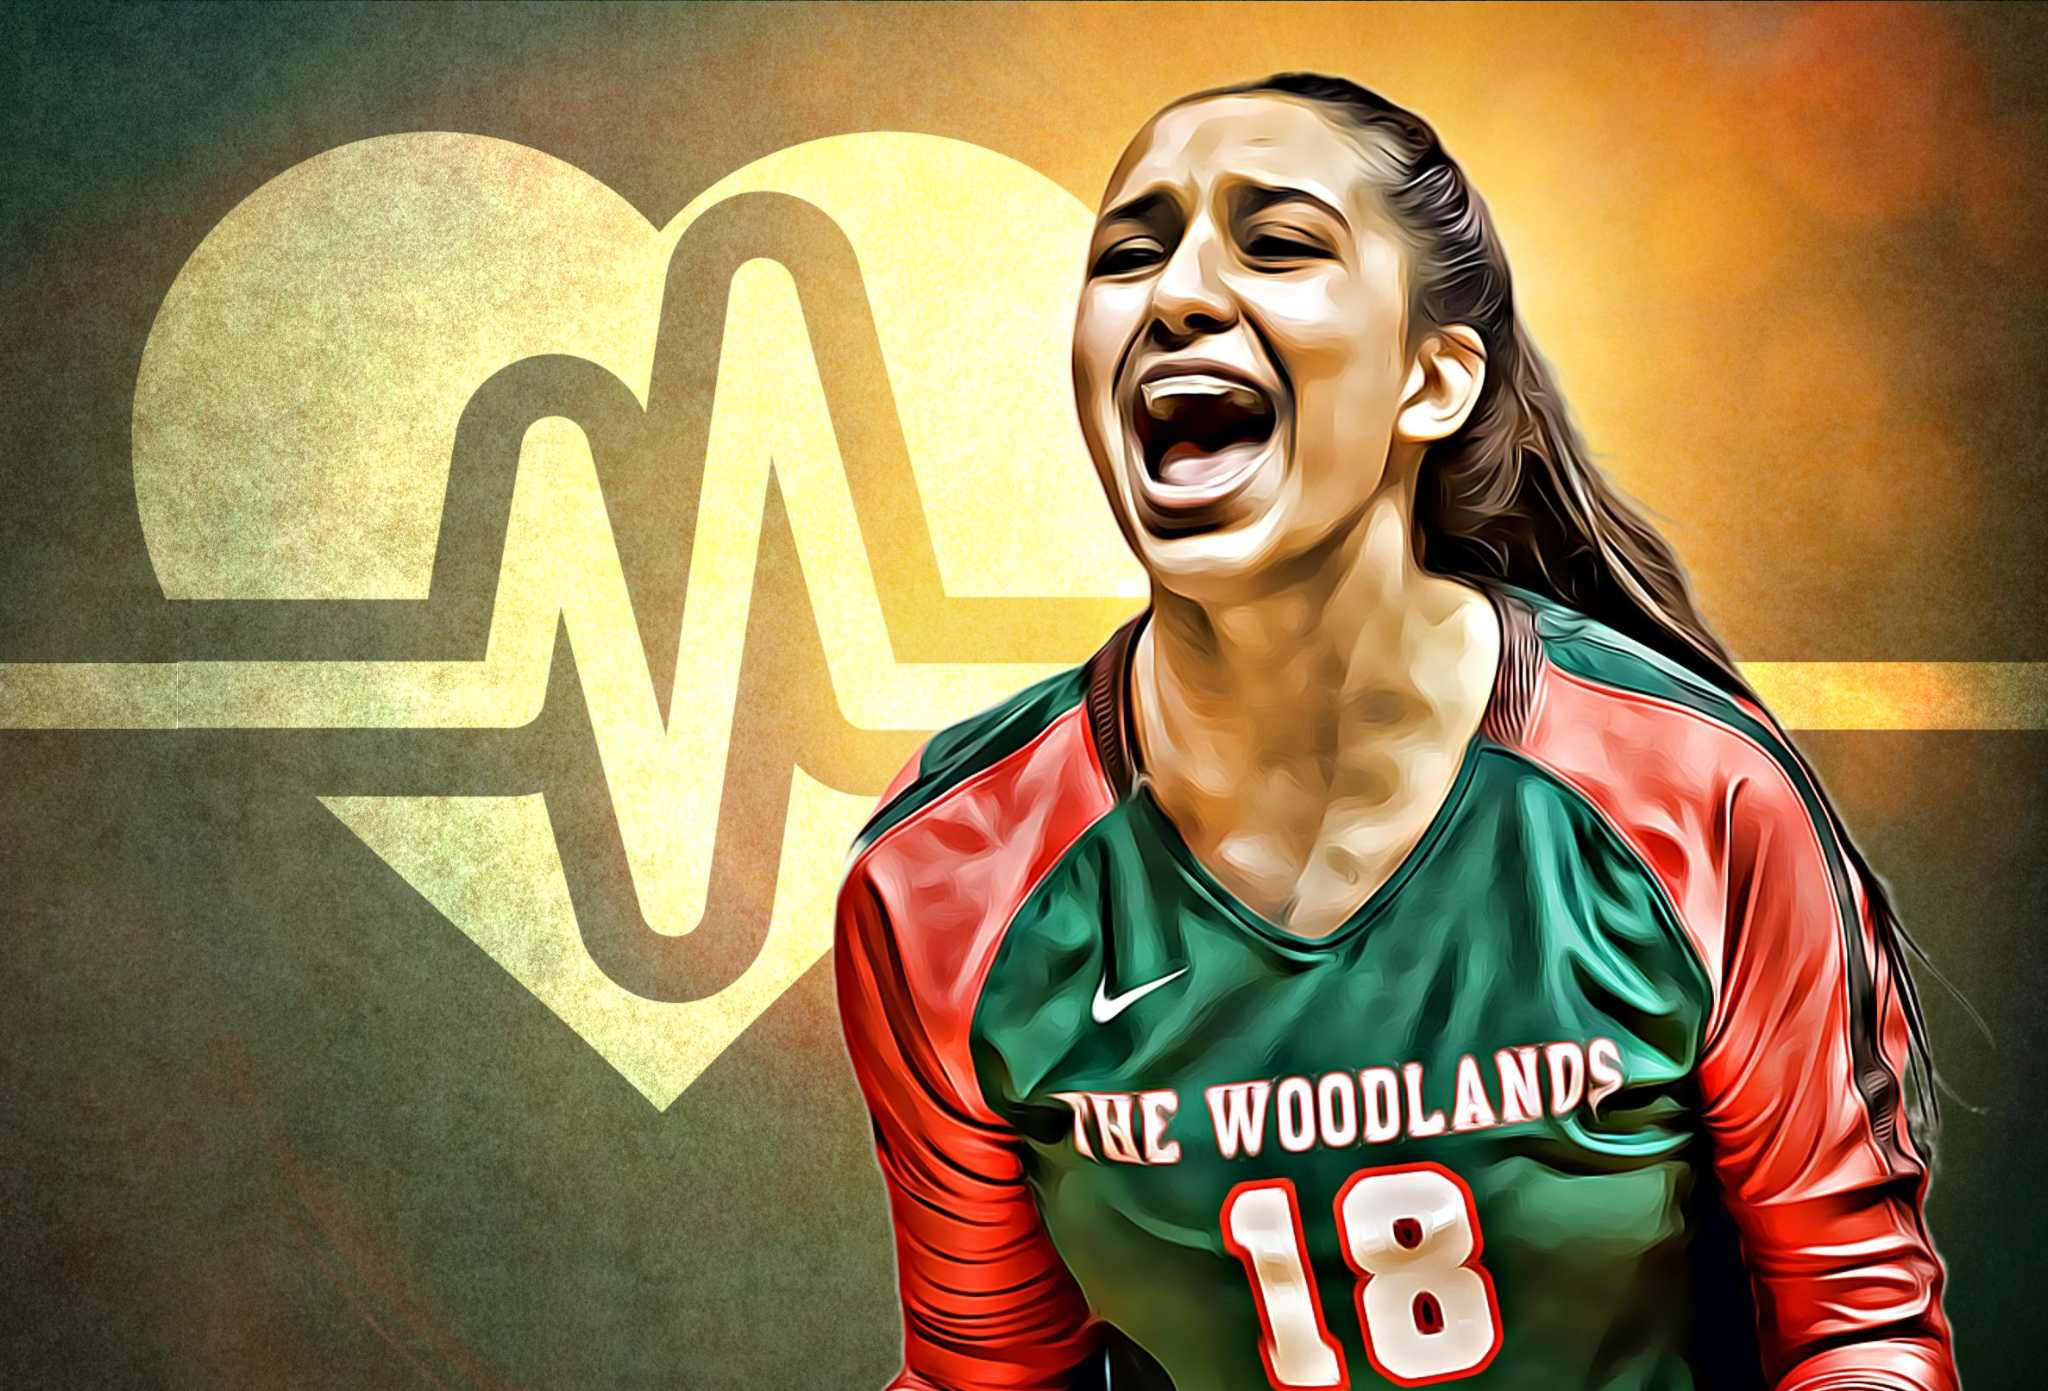 All Heart: The Woodlands' Julieta Valdes continues recovery